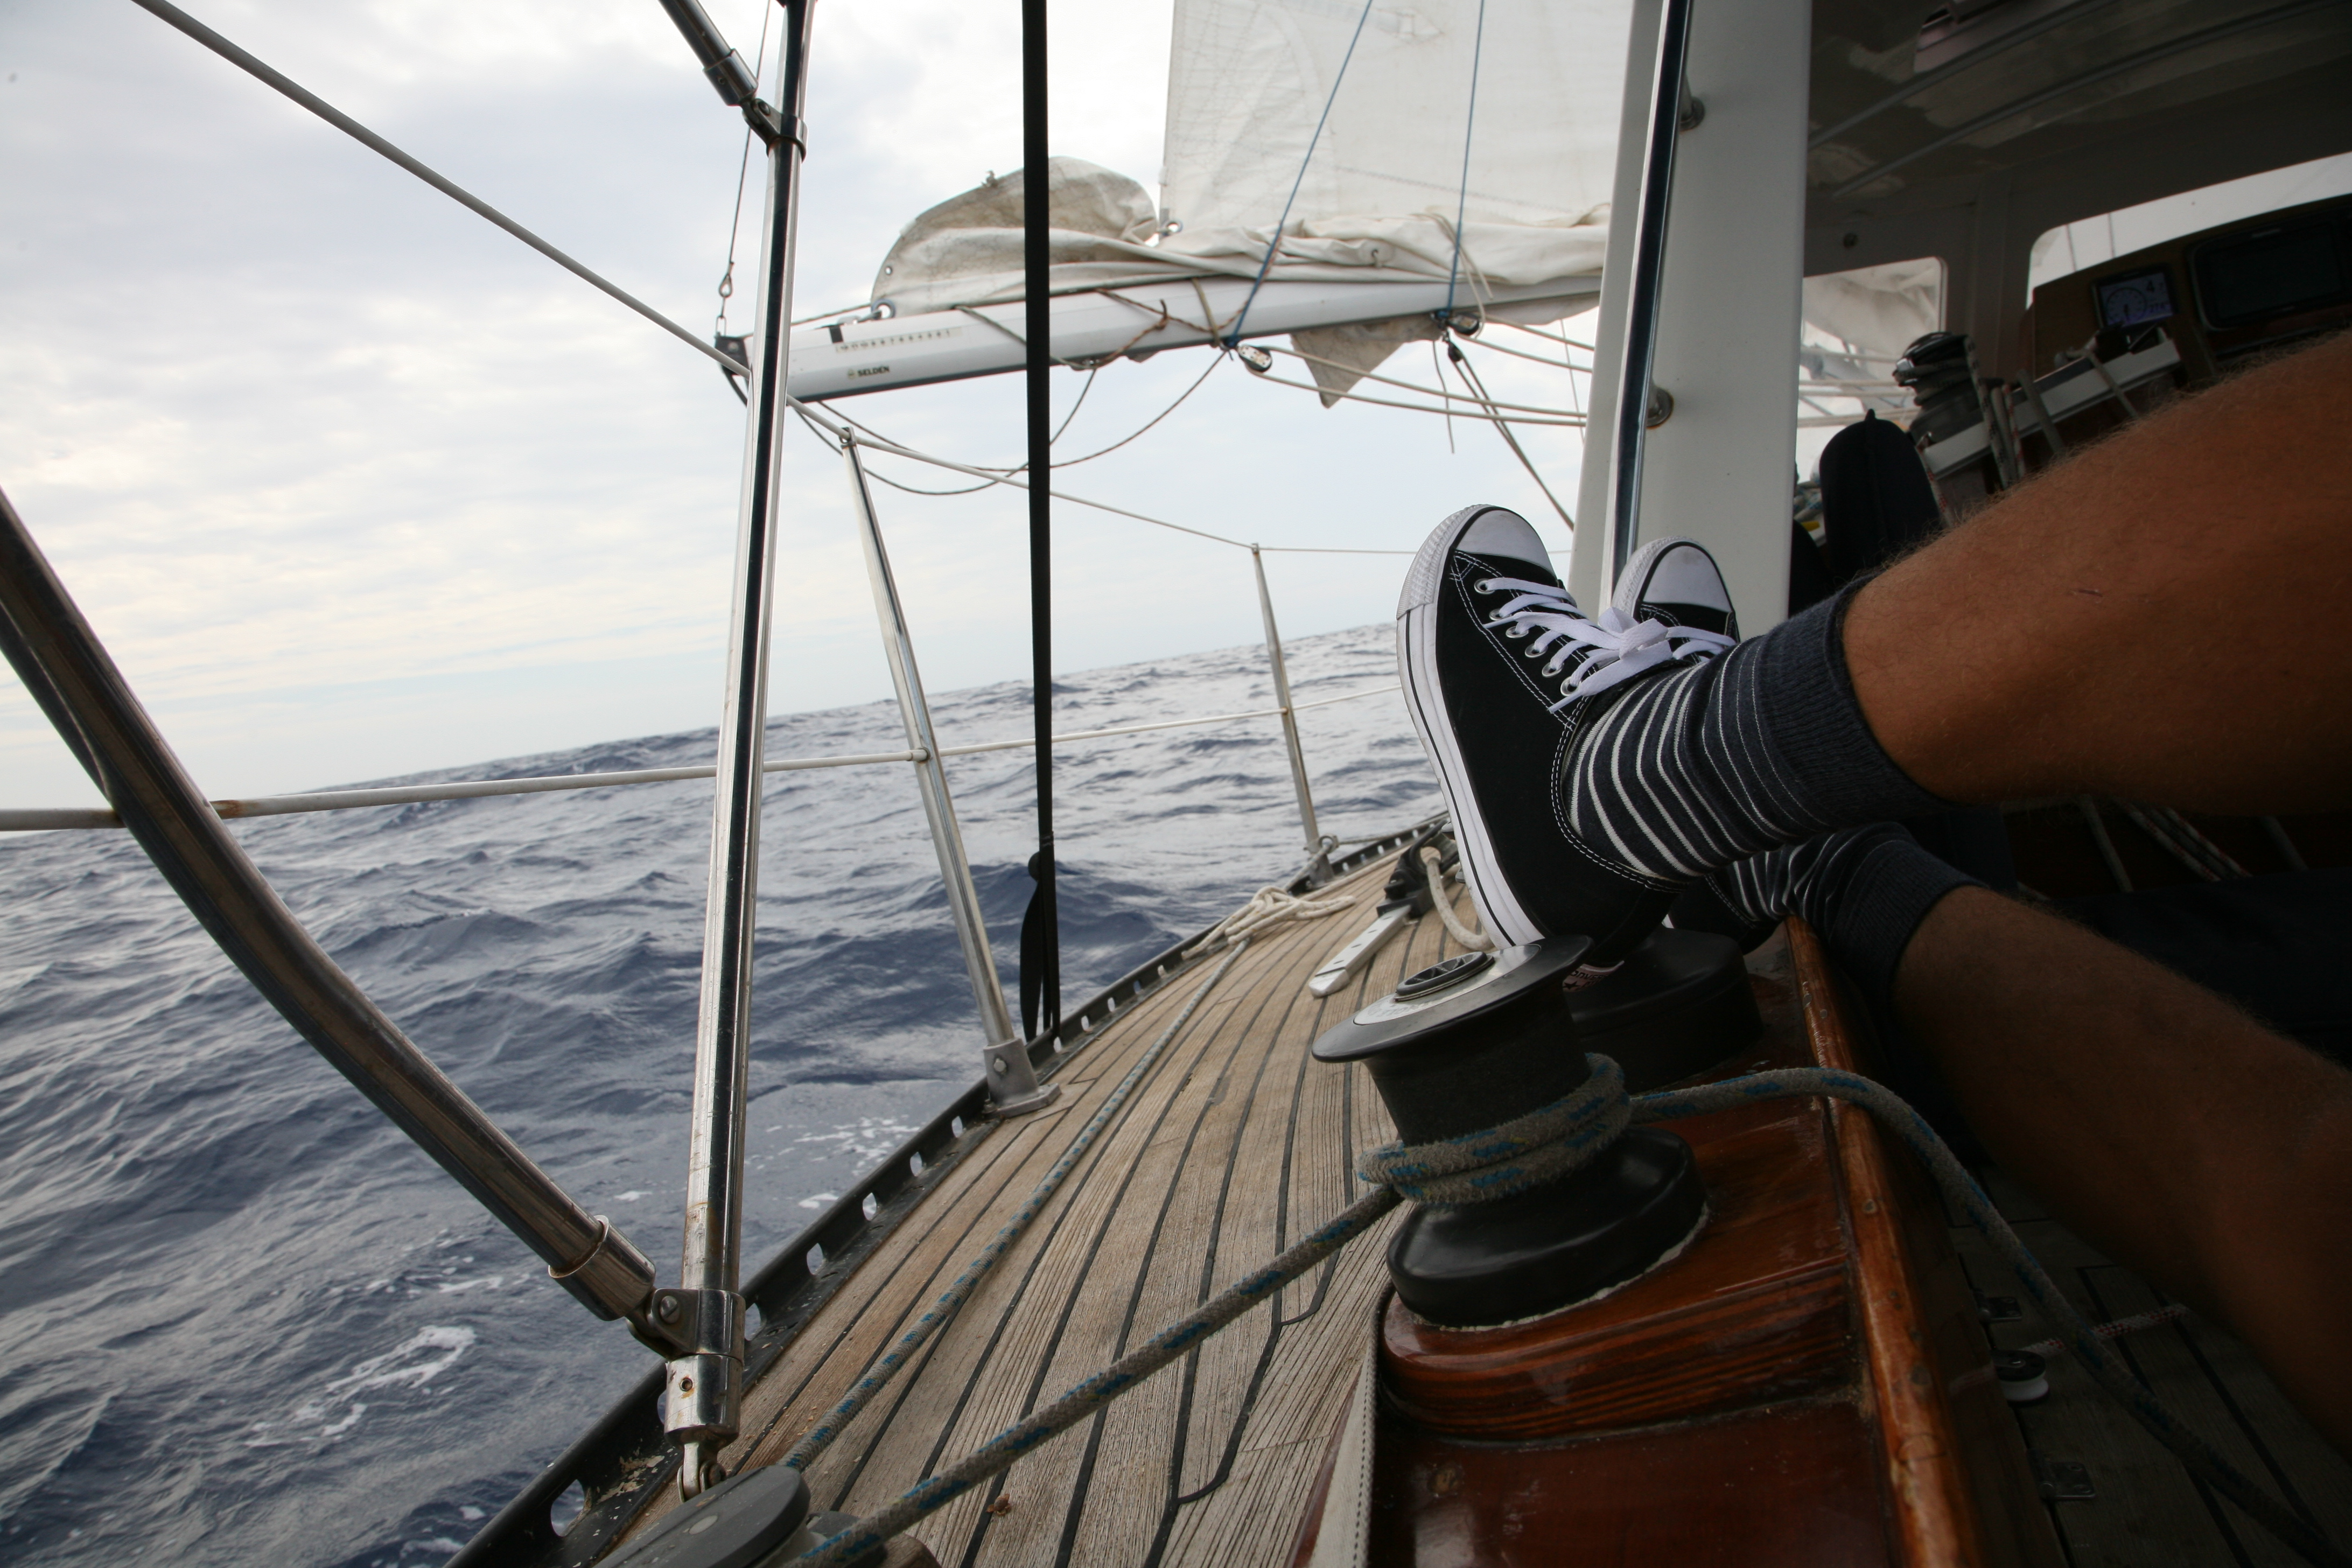 Sneakers on a sail boat.